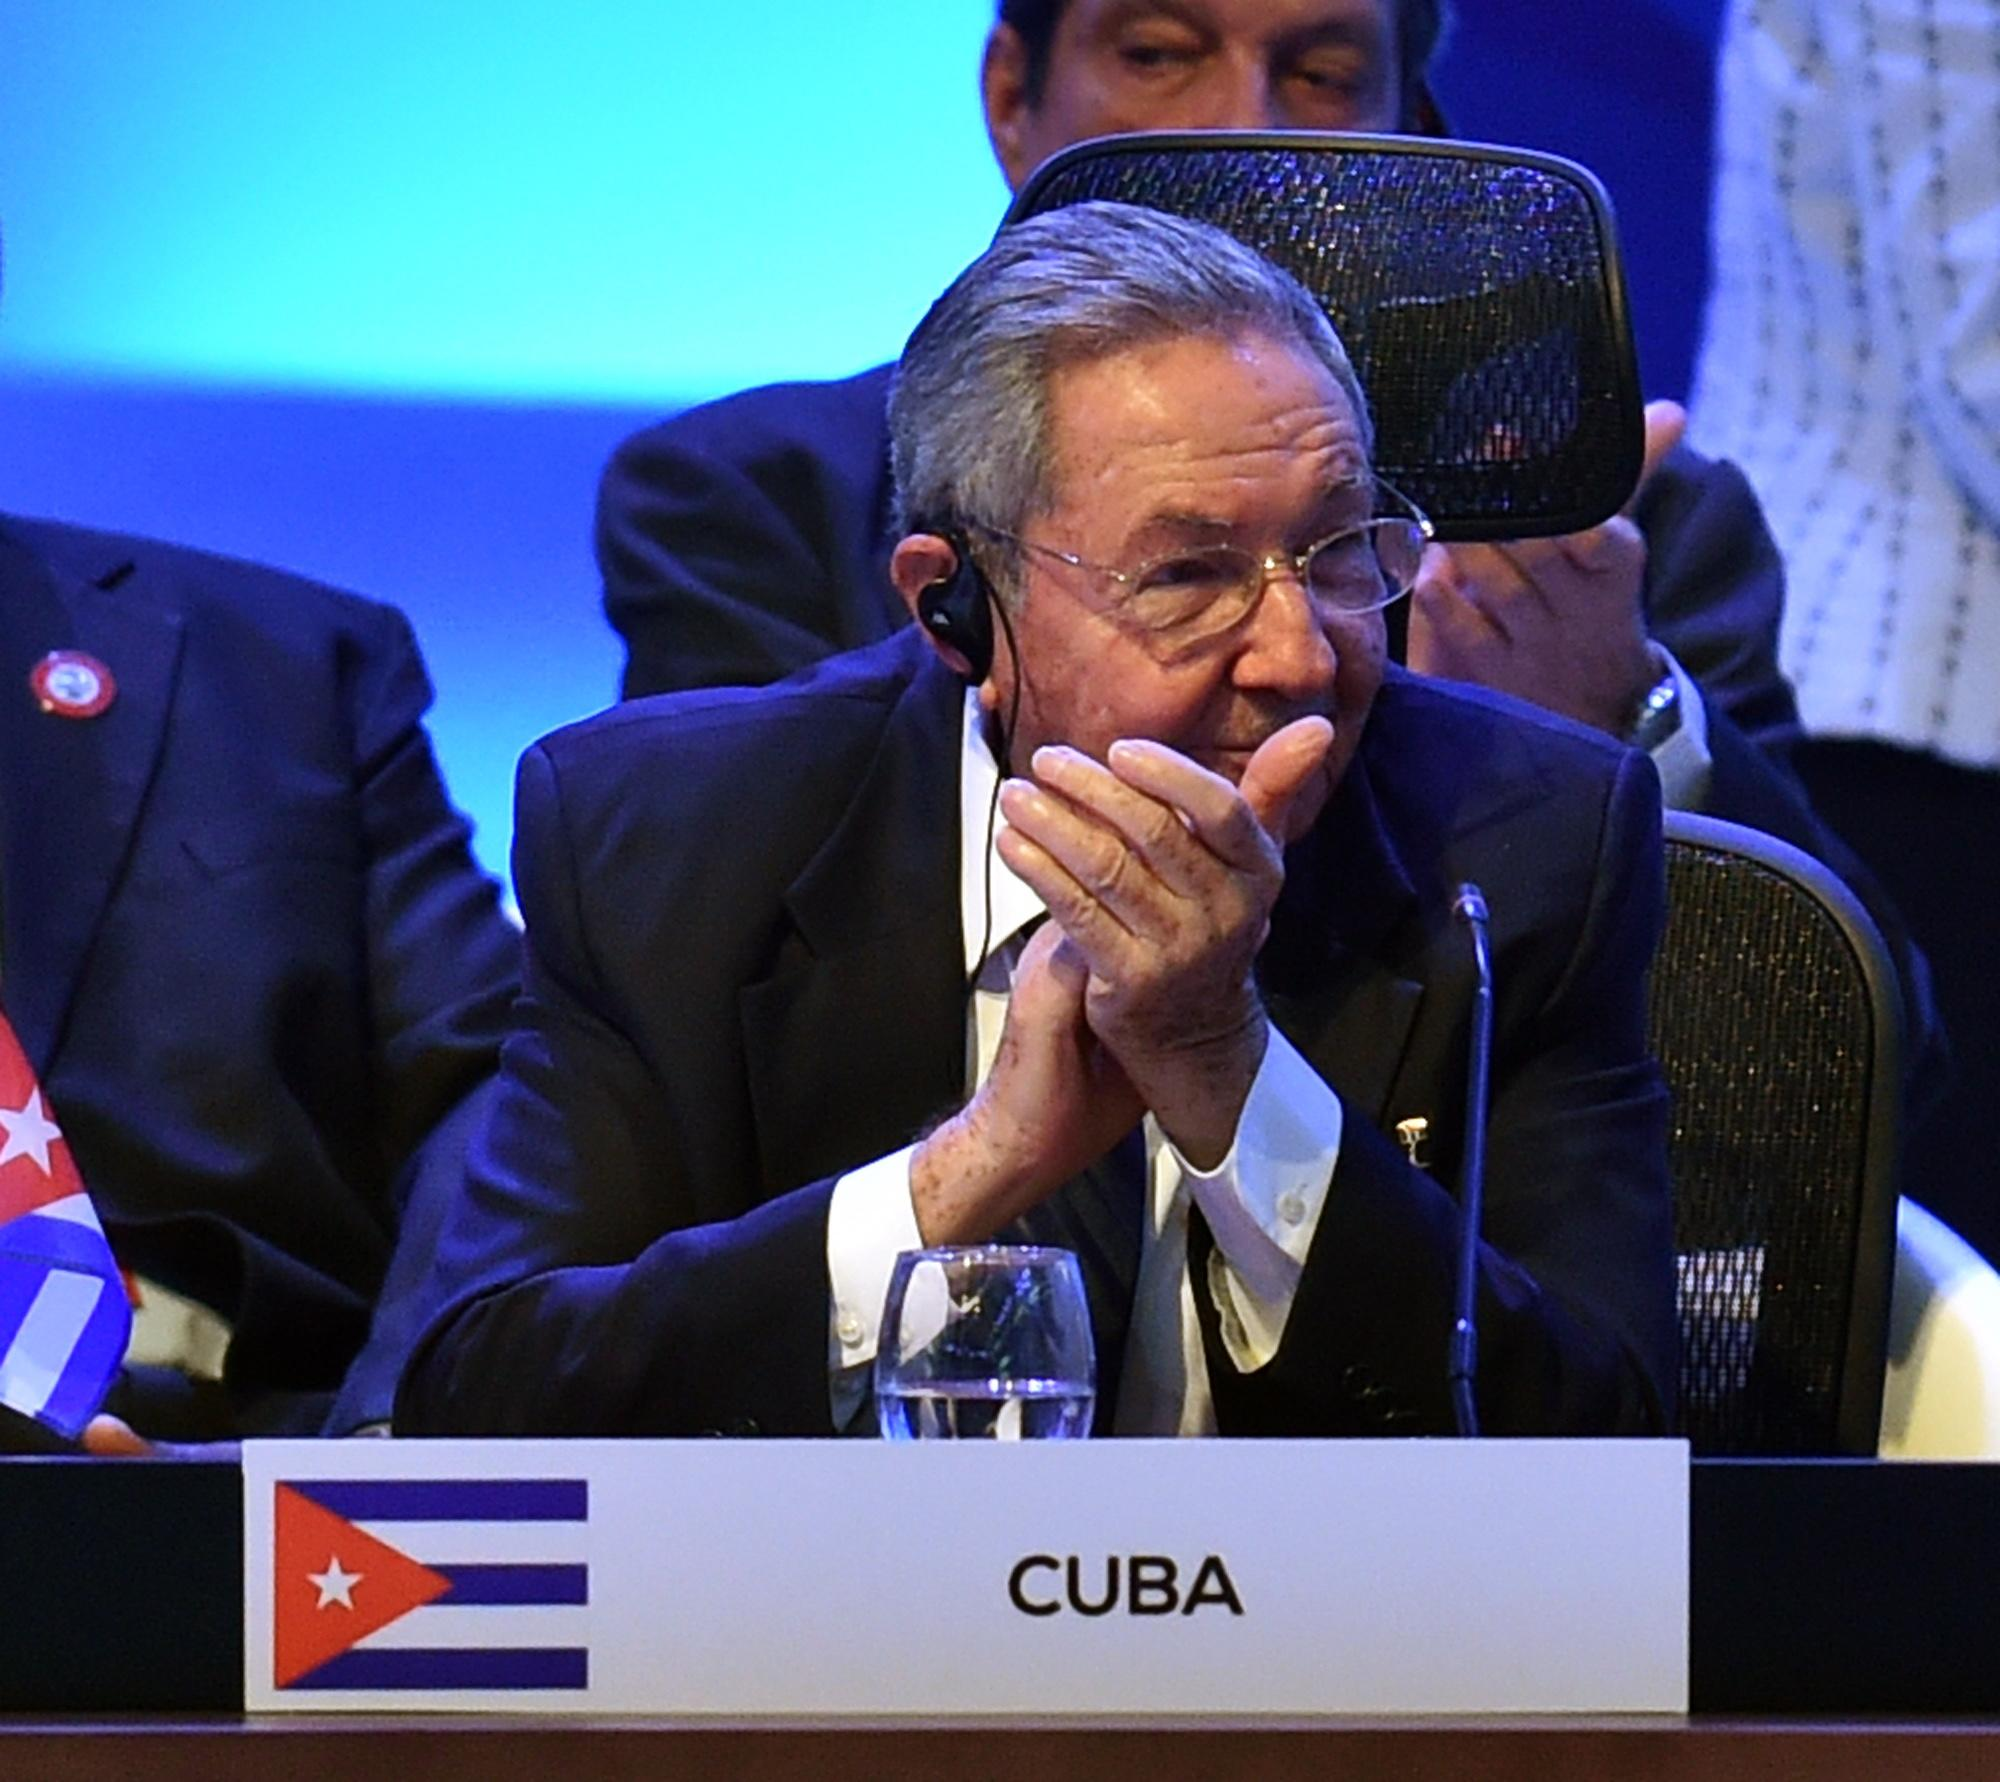 'Peace between us,' Raul Castro says of US ties